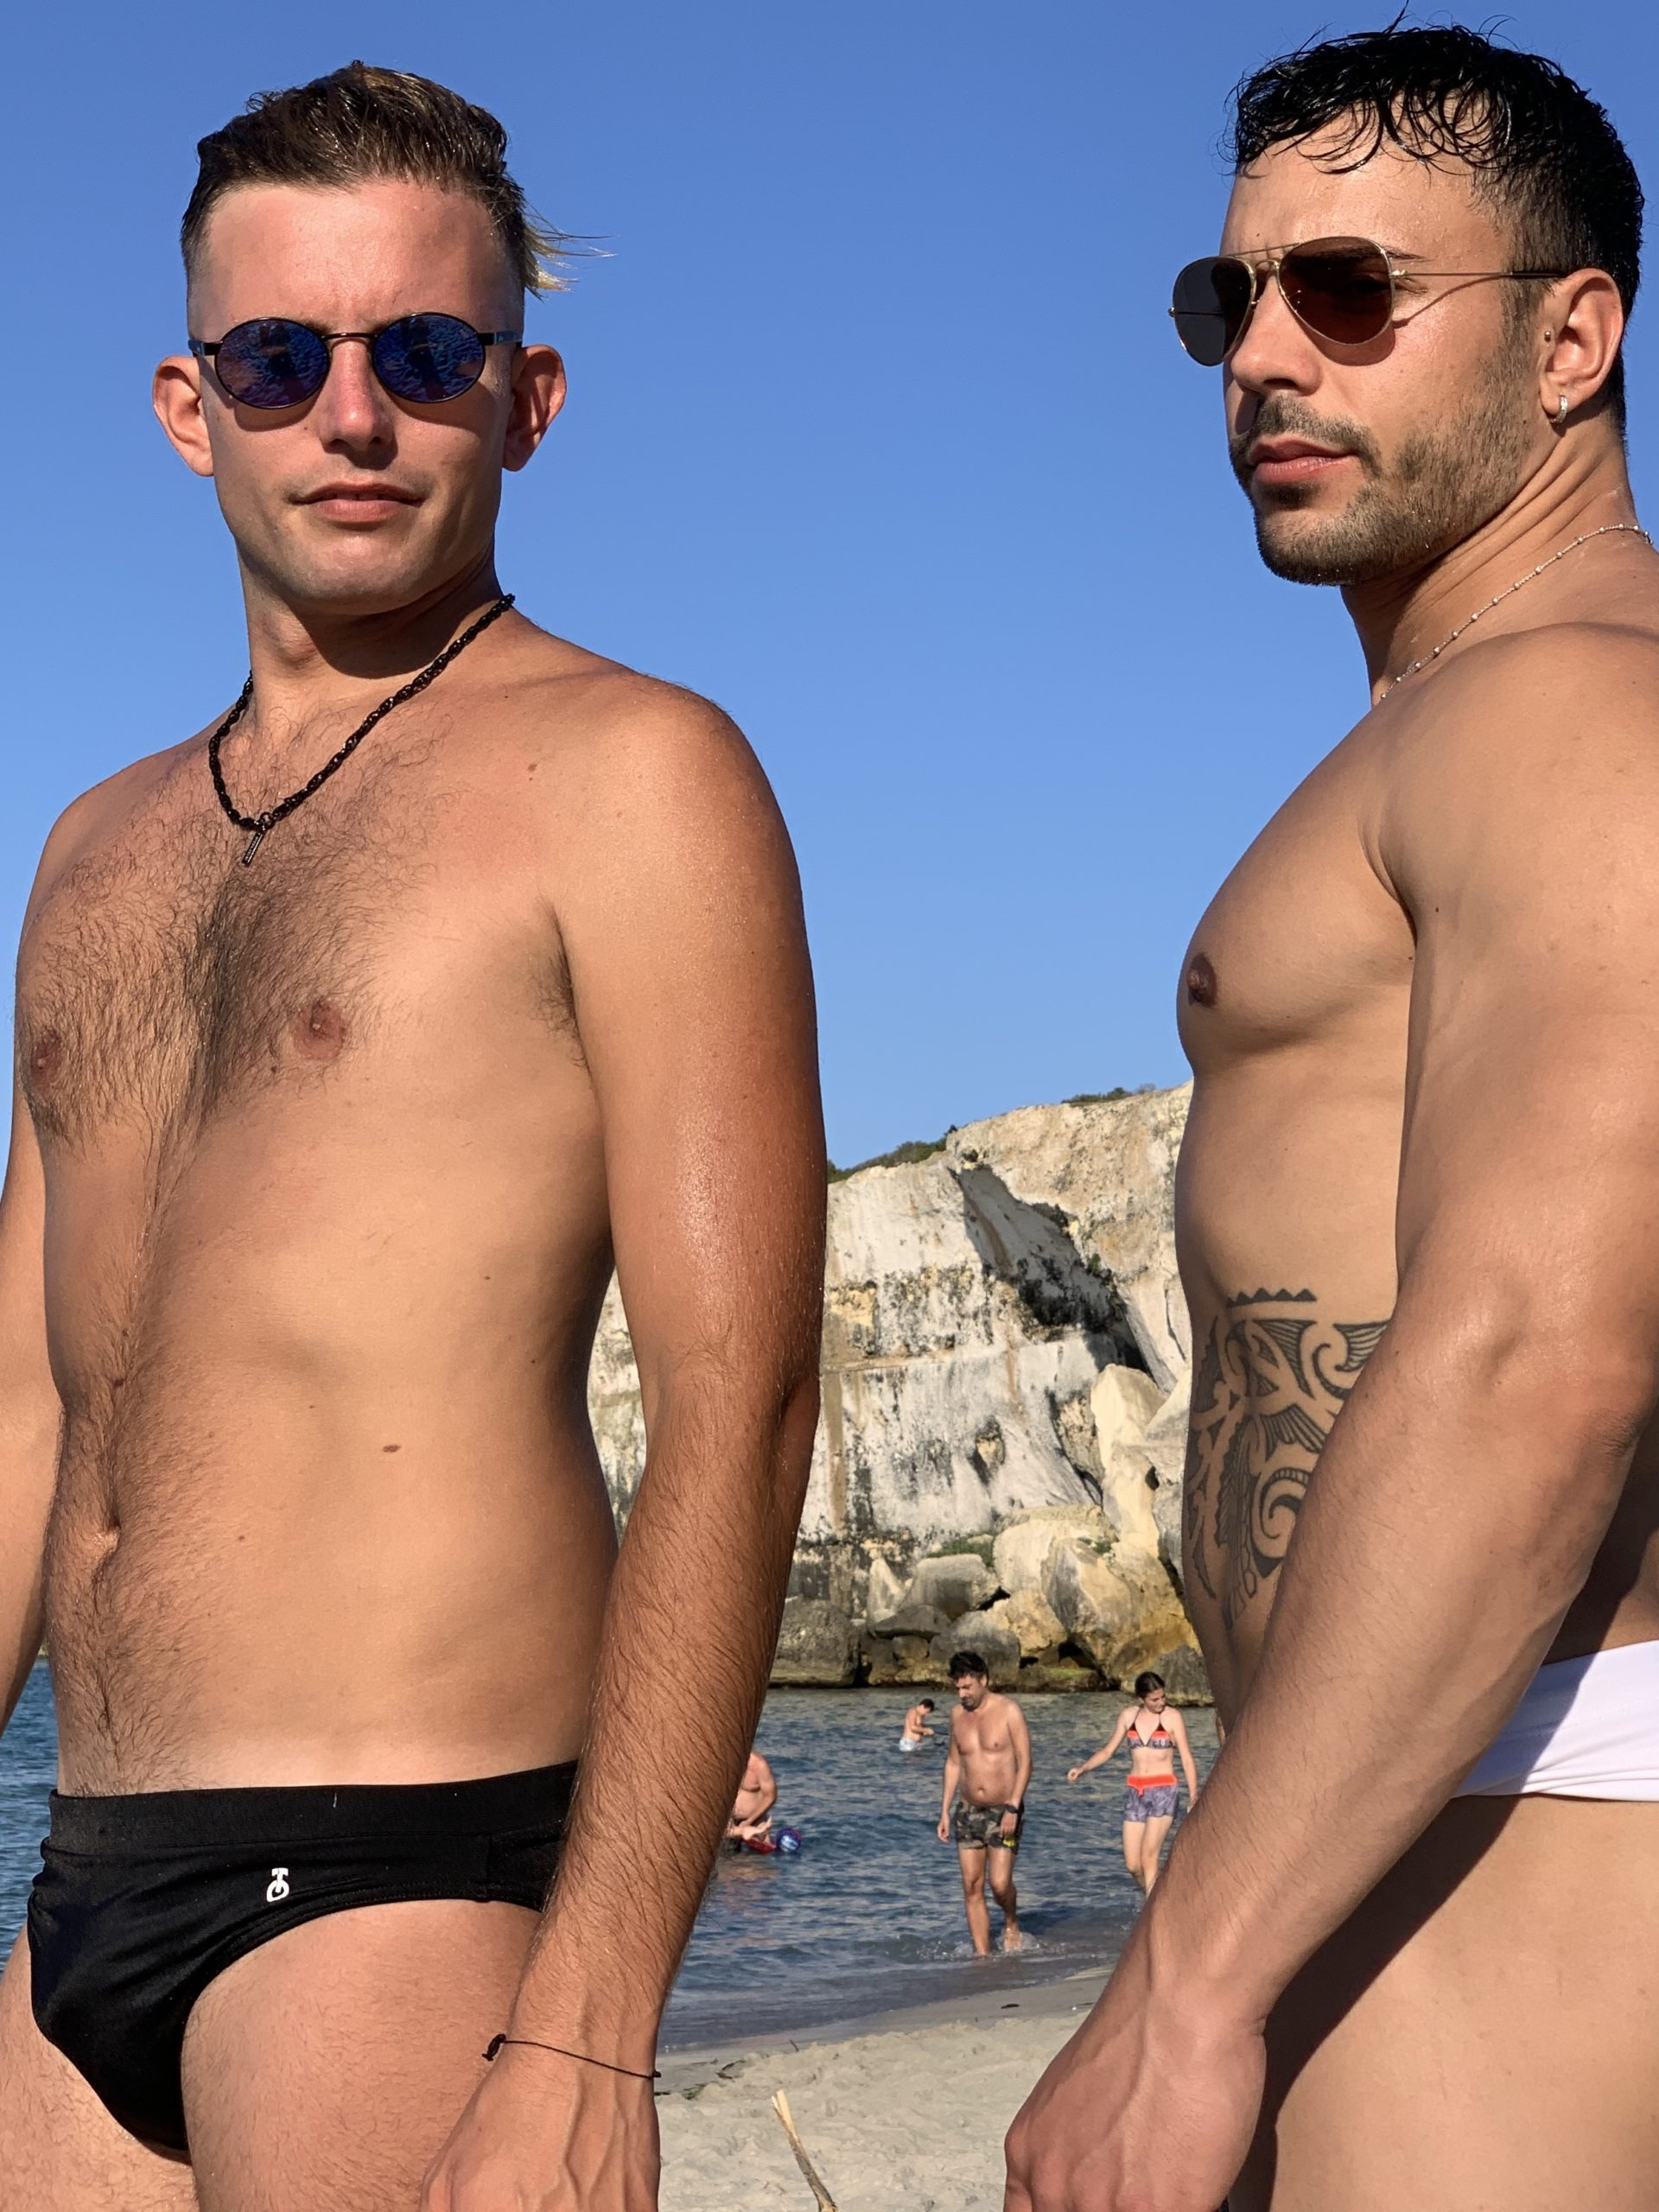 Some Italian guys enjoy the hot summer sun at Spiaggia delle Due Sorelle in Puglia. The Big Gay Podcast from Puglia - the definitive guide to gay Puglia.